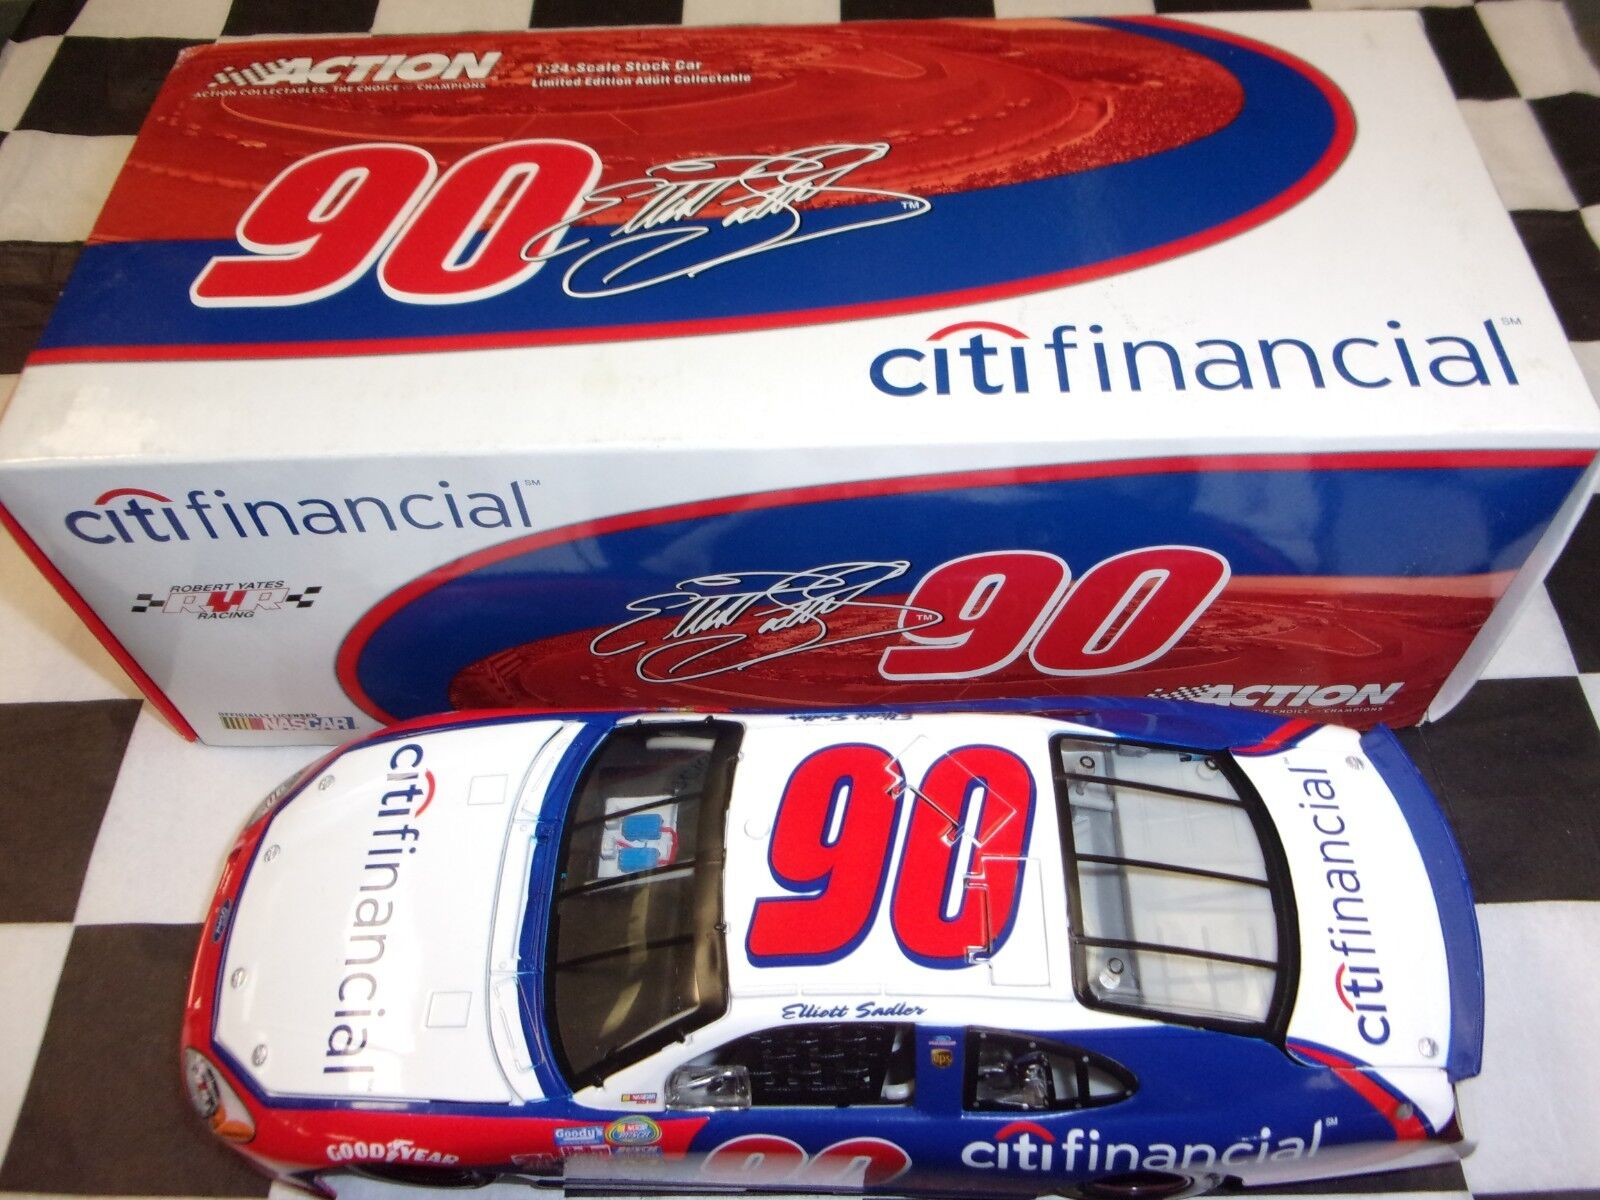 Elliott Sadler  90 CitiFinancial 2005 Taurus Action 1 24 scale car NASCAR 109106